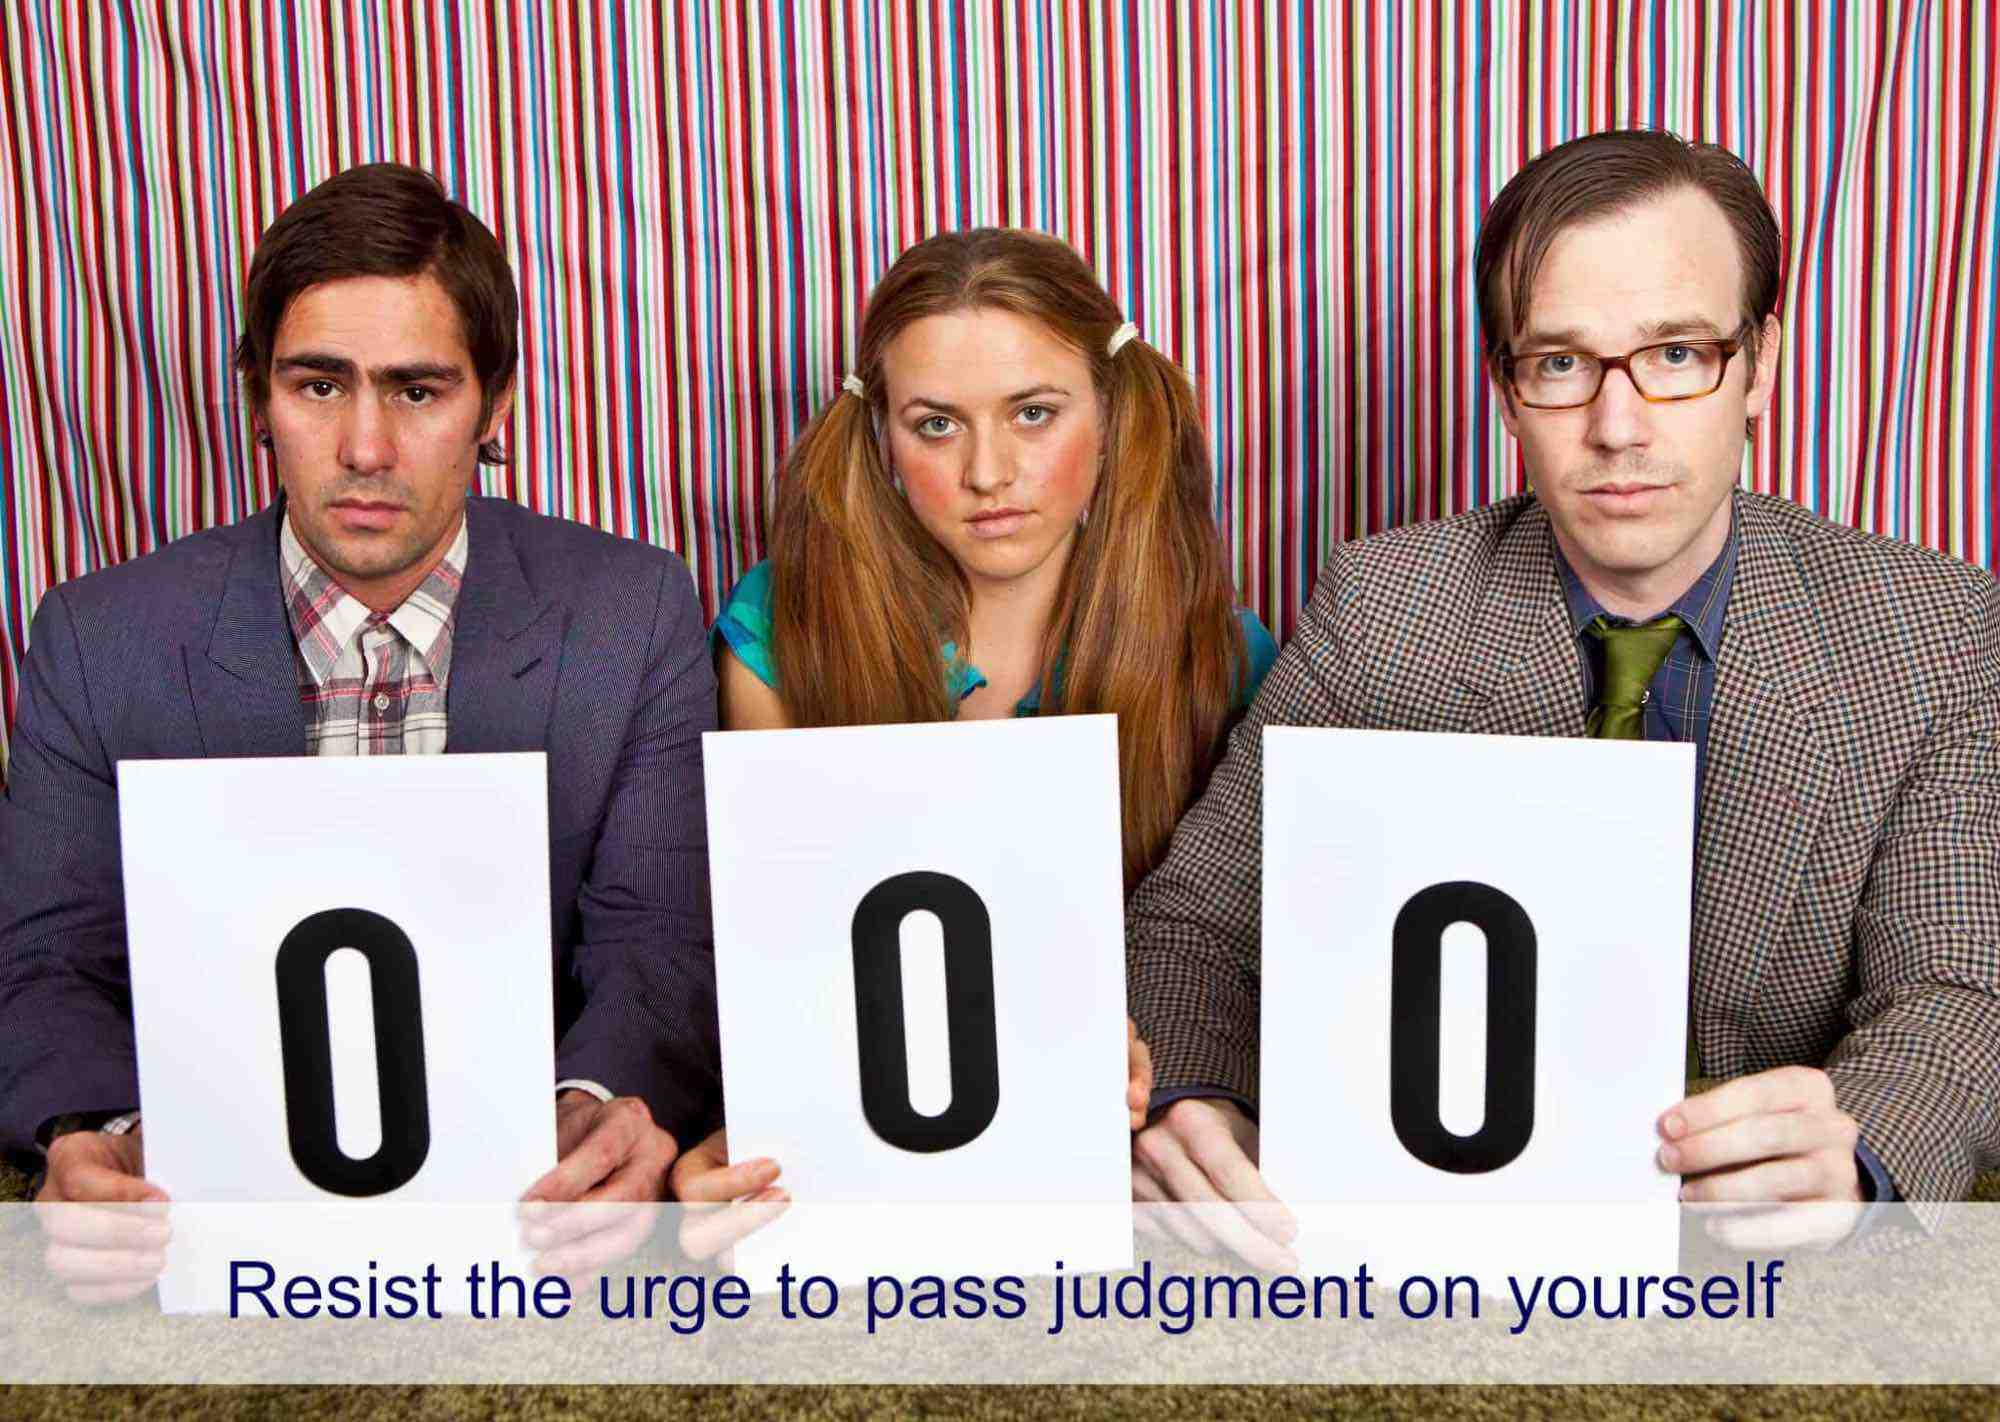 Three judges holding up 0 rating cards